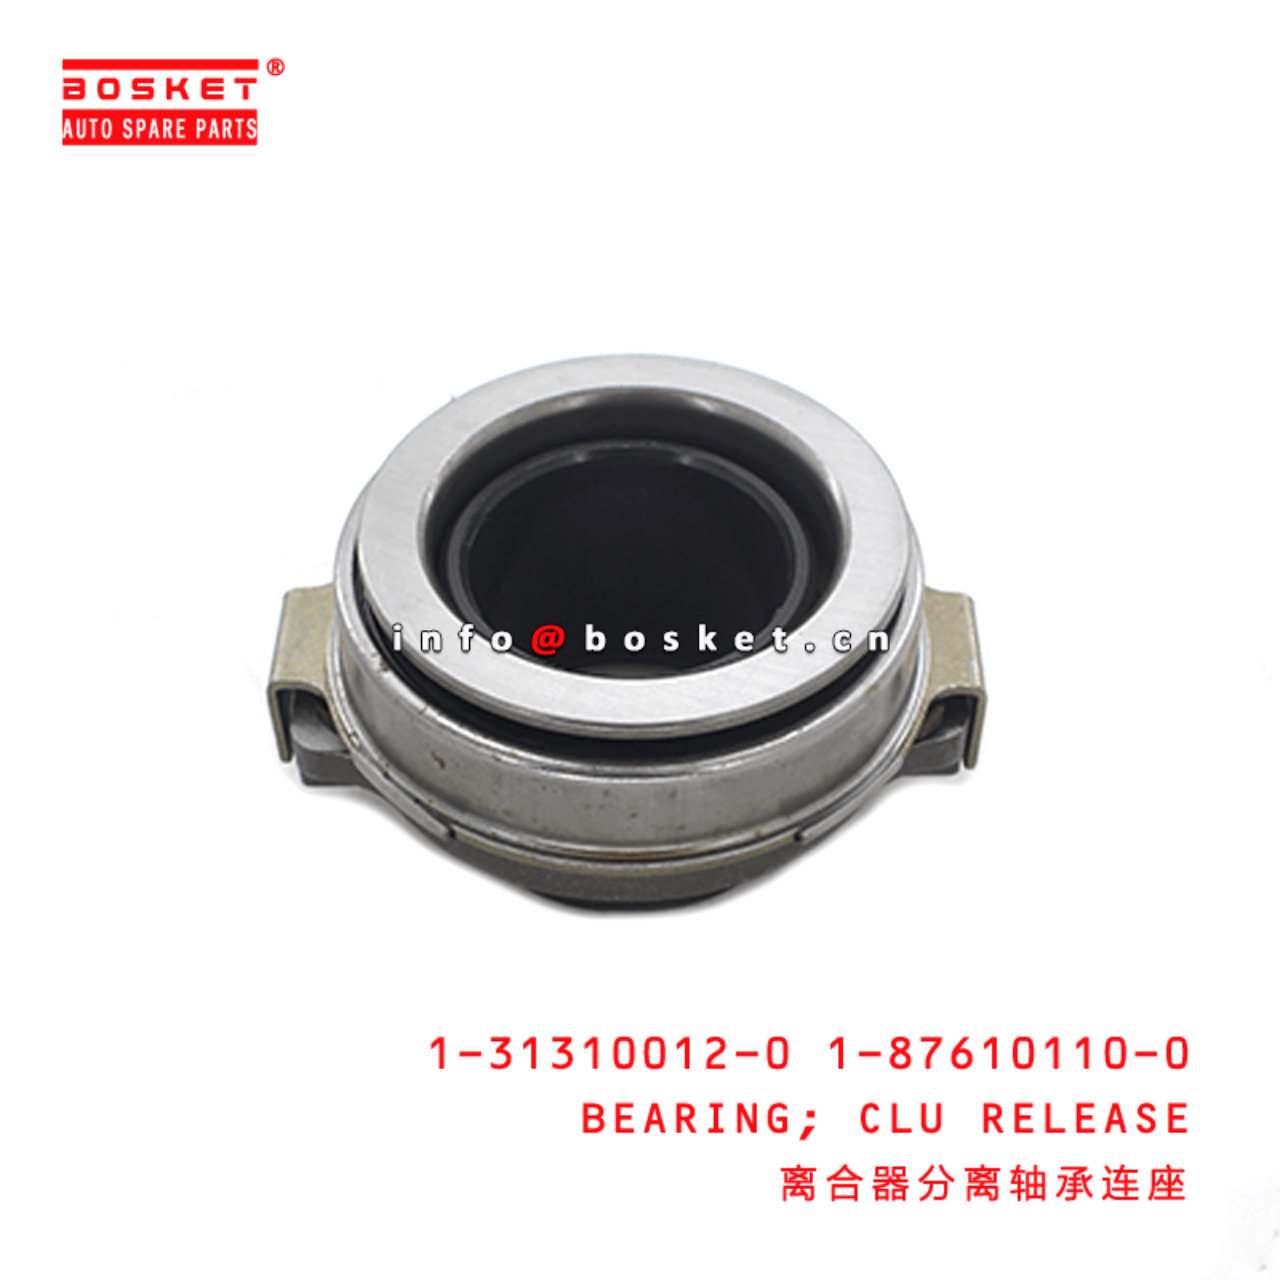 1-31310012-0 1-87610110-0 Clutch Release Bearing 1313100120 1876101100 Suitable for ISUZU ELF 4HK1